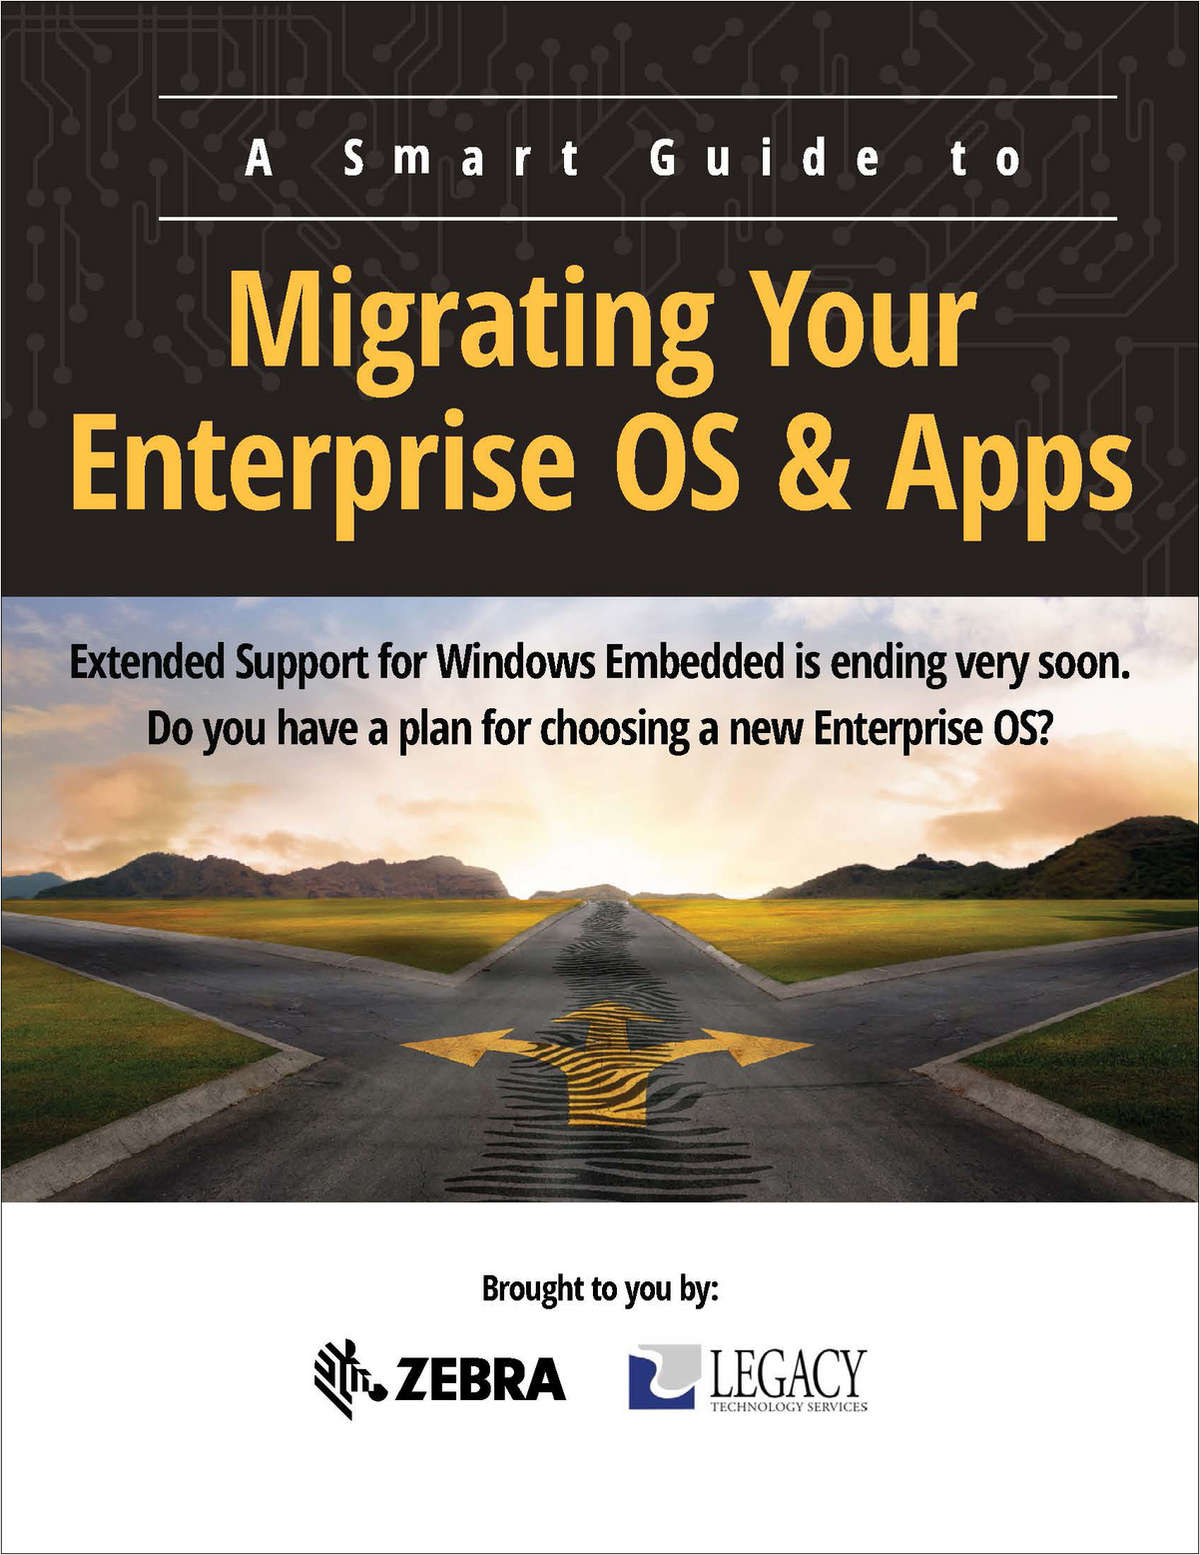 The Smart Guide to Migrating Your Enterprise OS & Apps